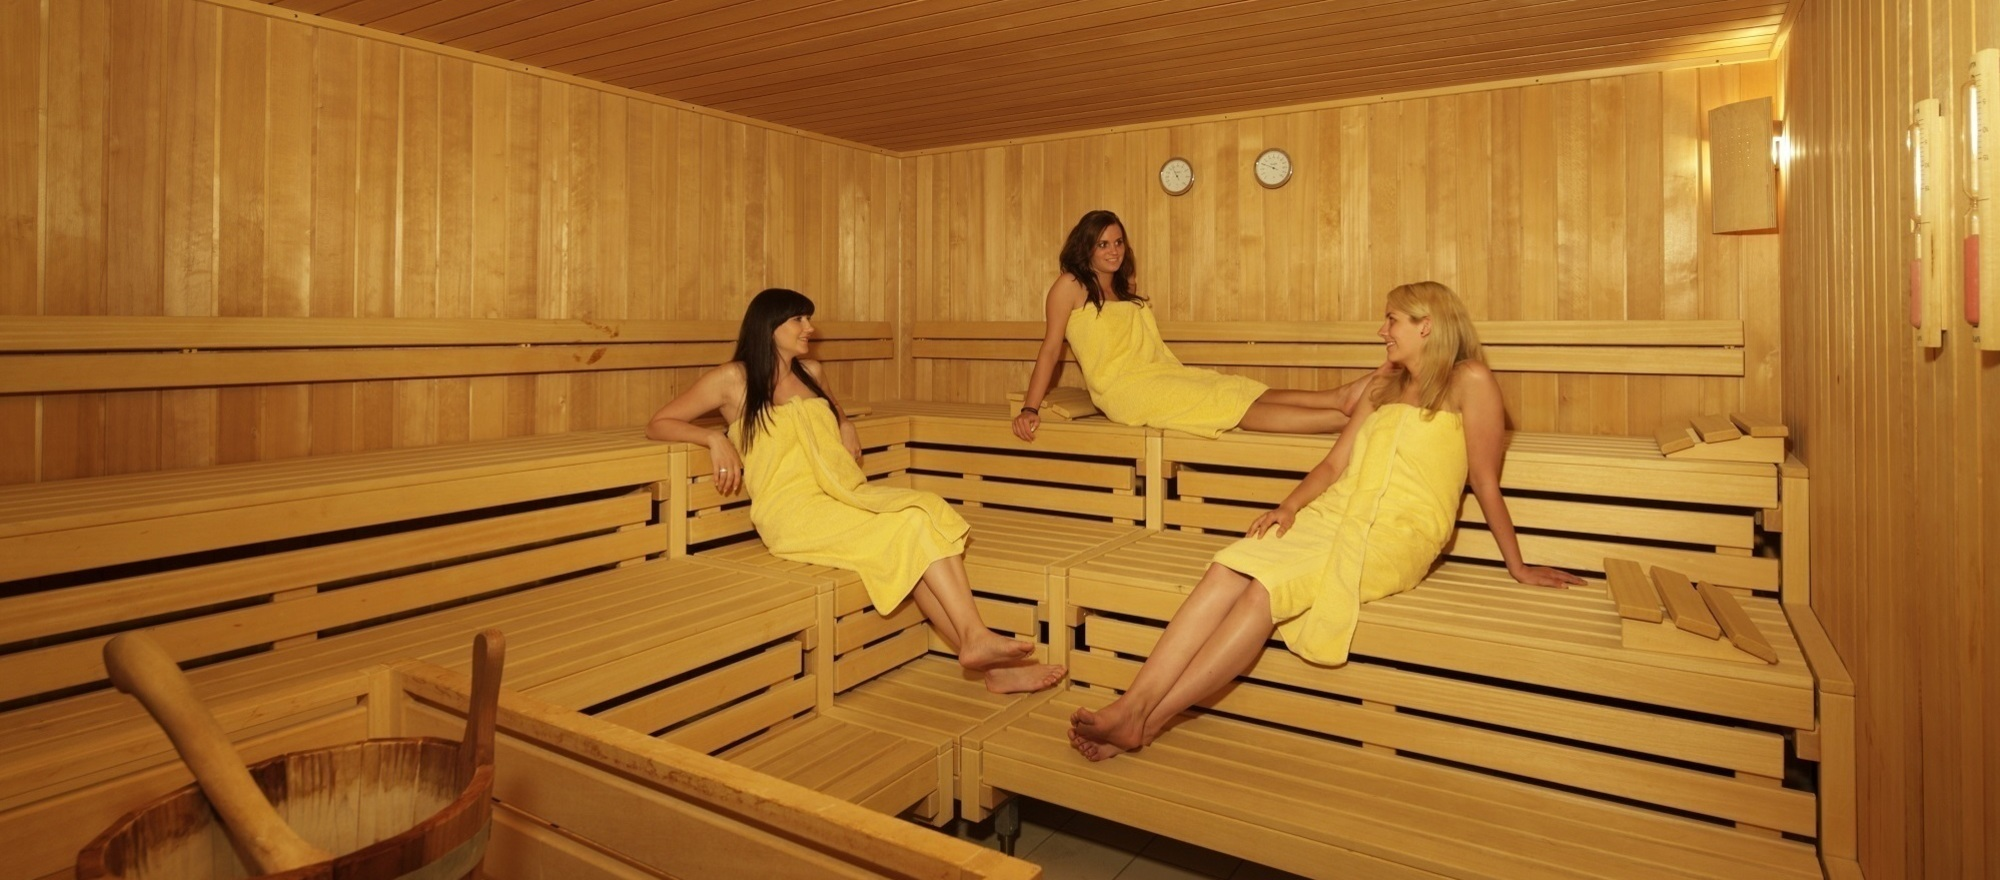 Finnish sauna at the at the 3-star hotel Ringhotel Germanenhof in Steinheim-Sandebeck